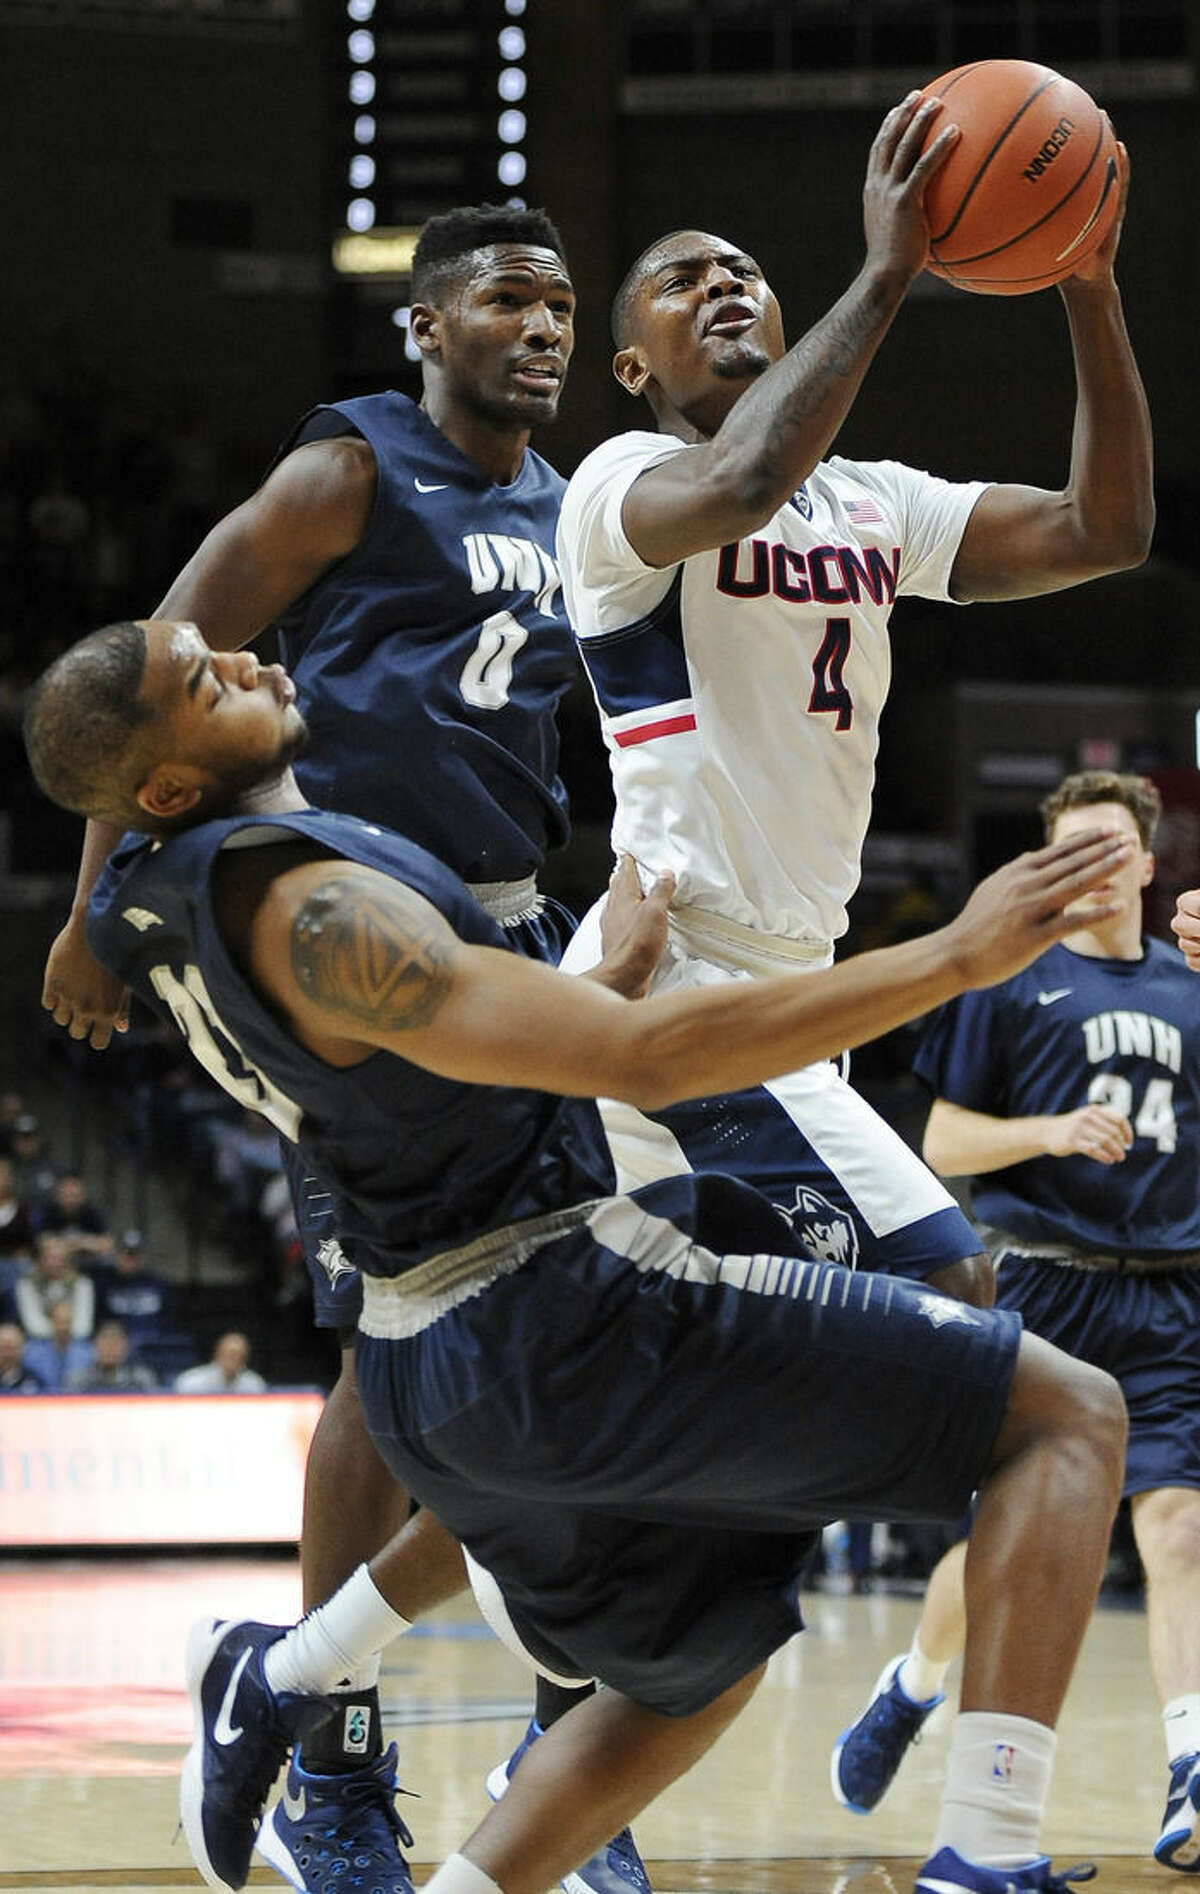 Connecticut's Sterling Gibbs, right, goes up for a basket as he is fouled by New Hampshire's Ronnel Jordan, foreground, as New Hampshire's Jaleen Smith, back defends, in the first half of an NCAA college basketball game, Tuesday, Nov. 17, 2015, in Storrs, Conn. (AP Photo/Jessica Hill)